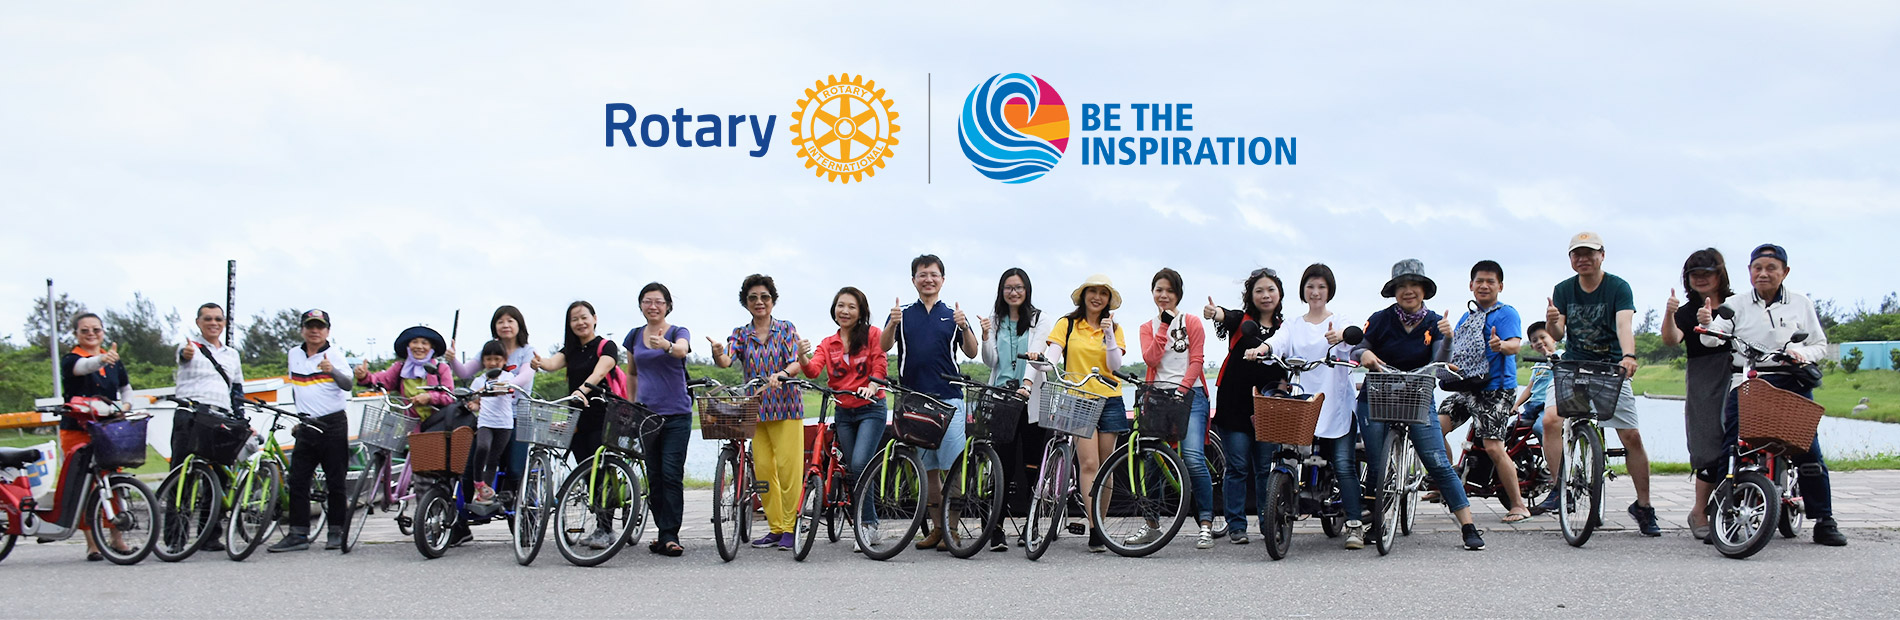 2018-19|Welcome To Harvest Rotary